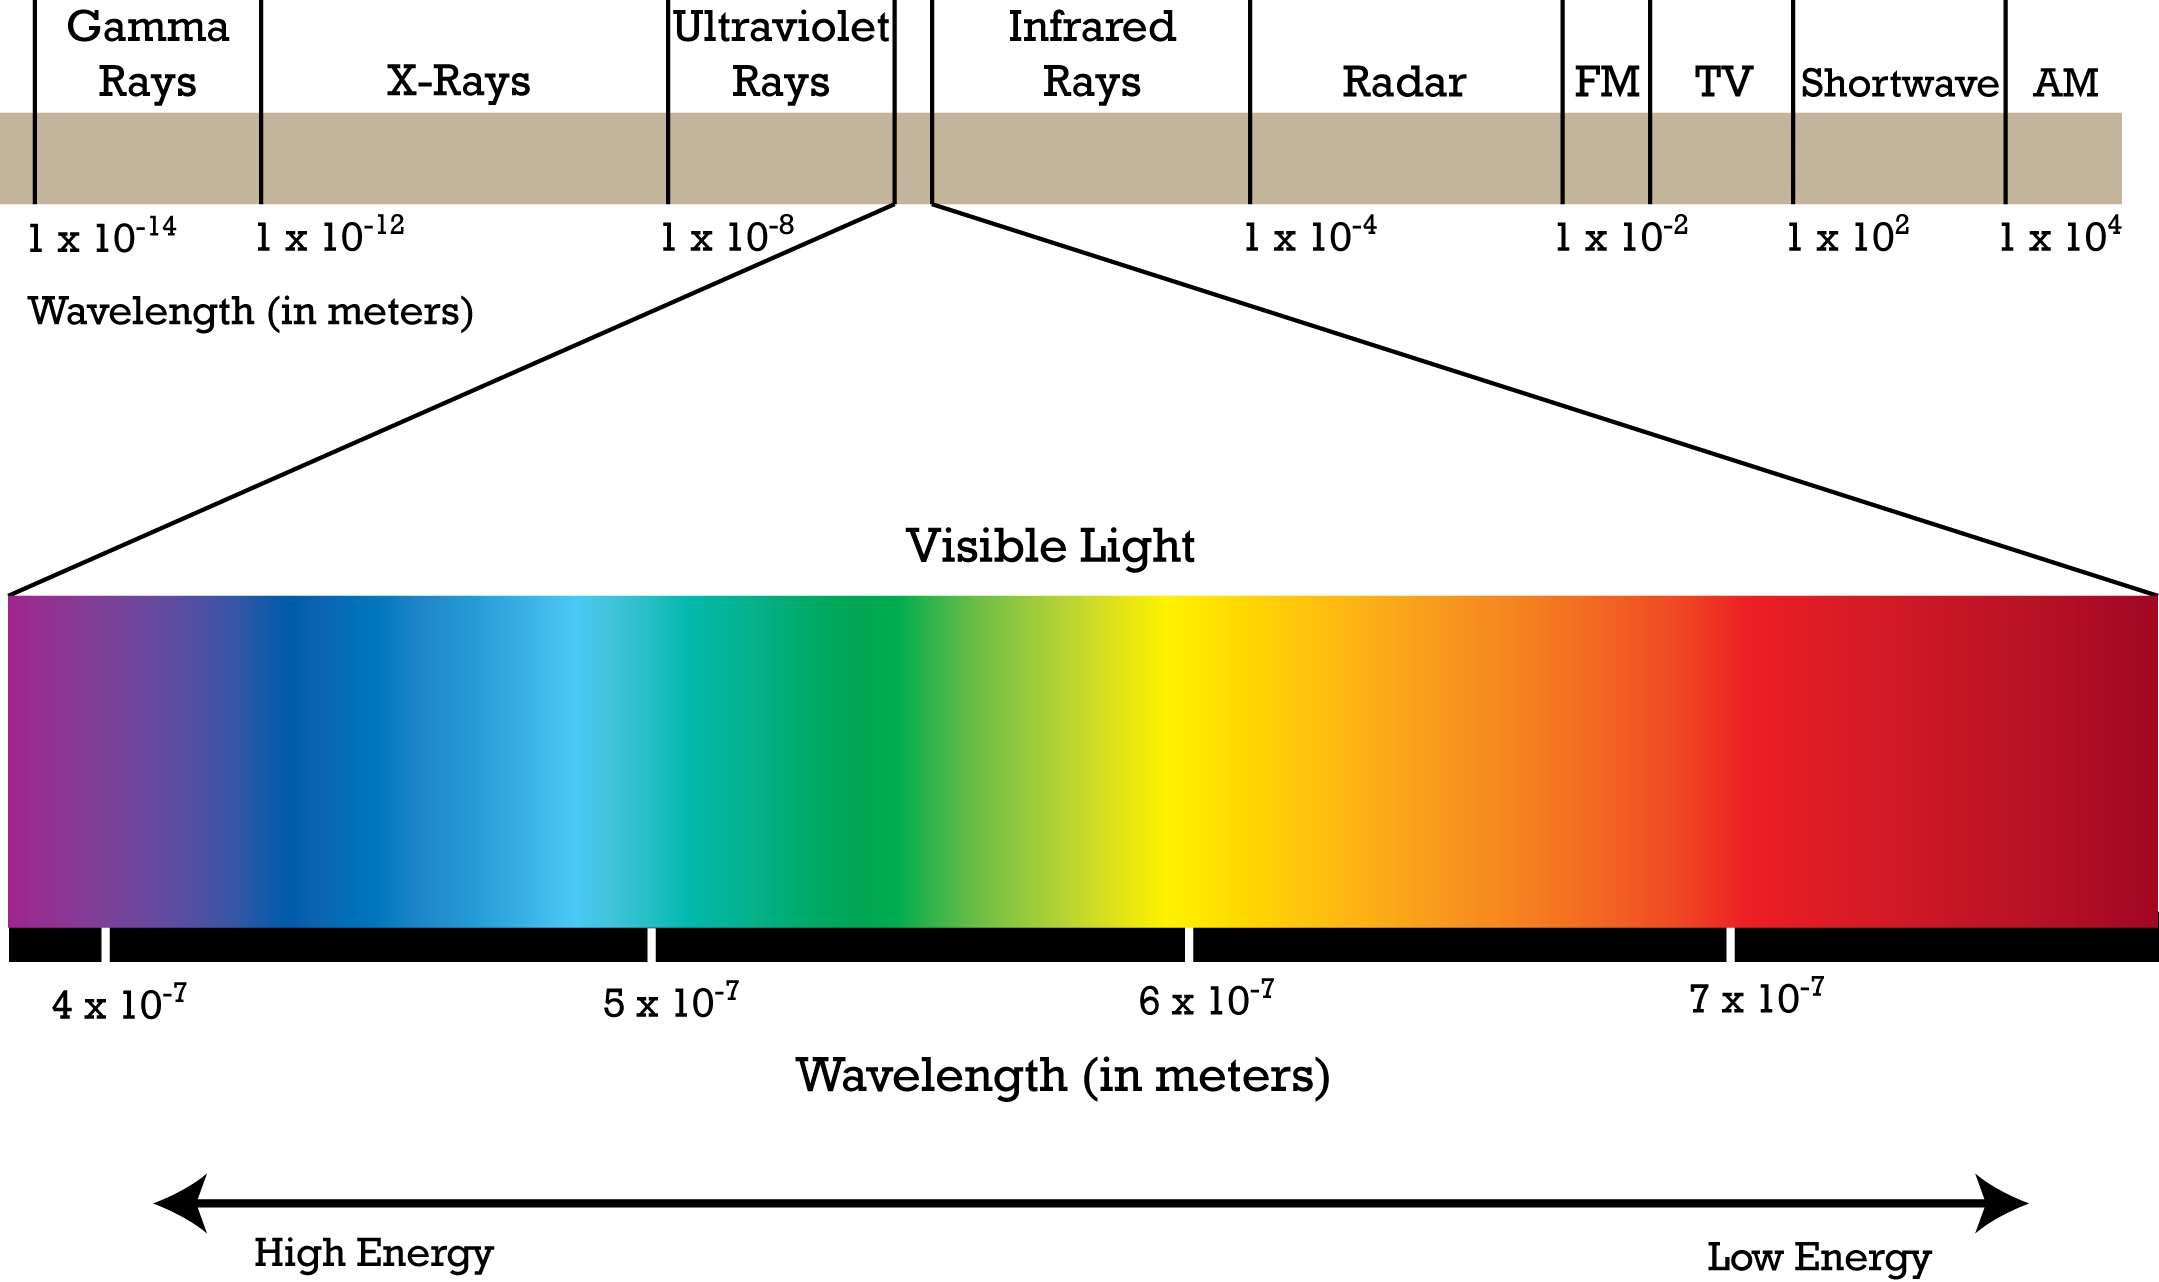 (http://www.pion.cz/_sites/pion/upload/images/a14cf10a5583d19f7cfdebd63cf64382_electromagnetic-spectrum.png)